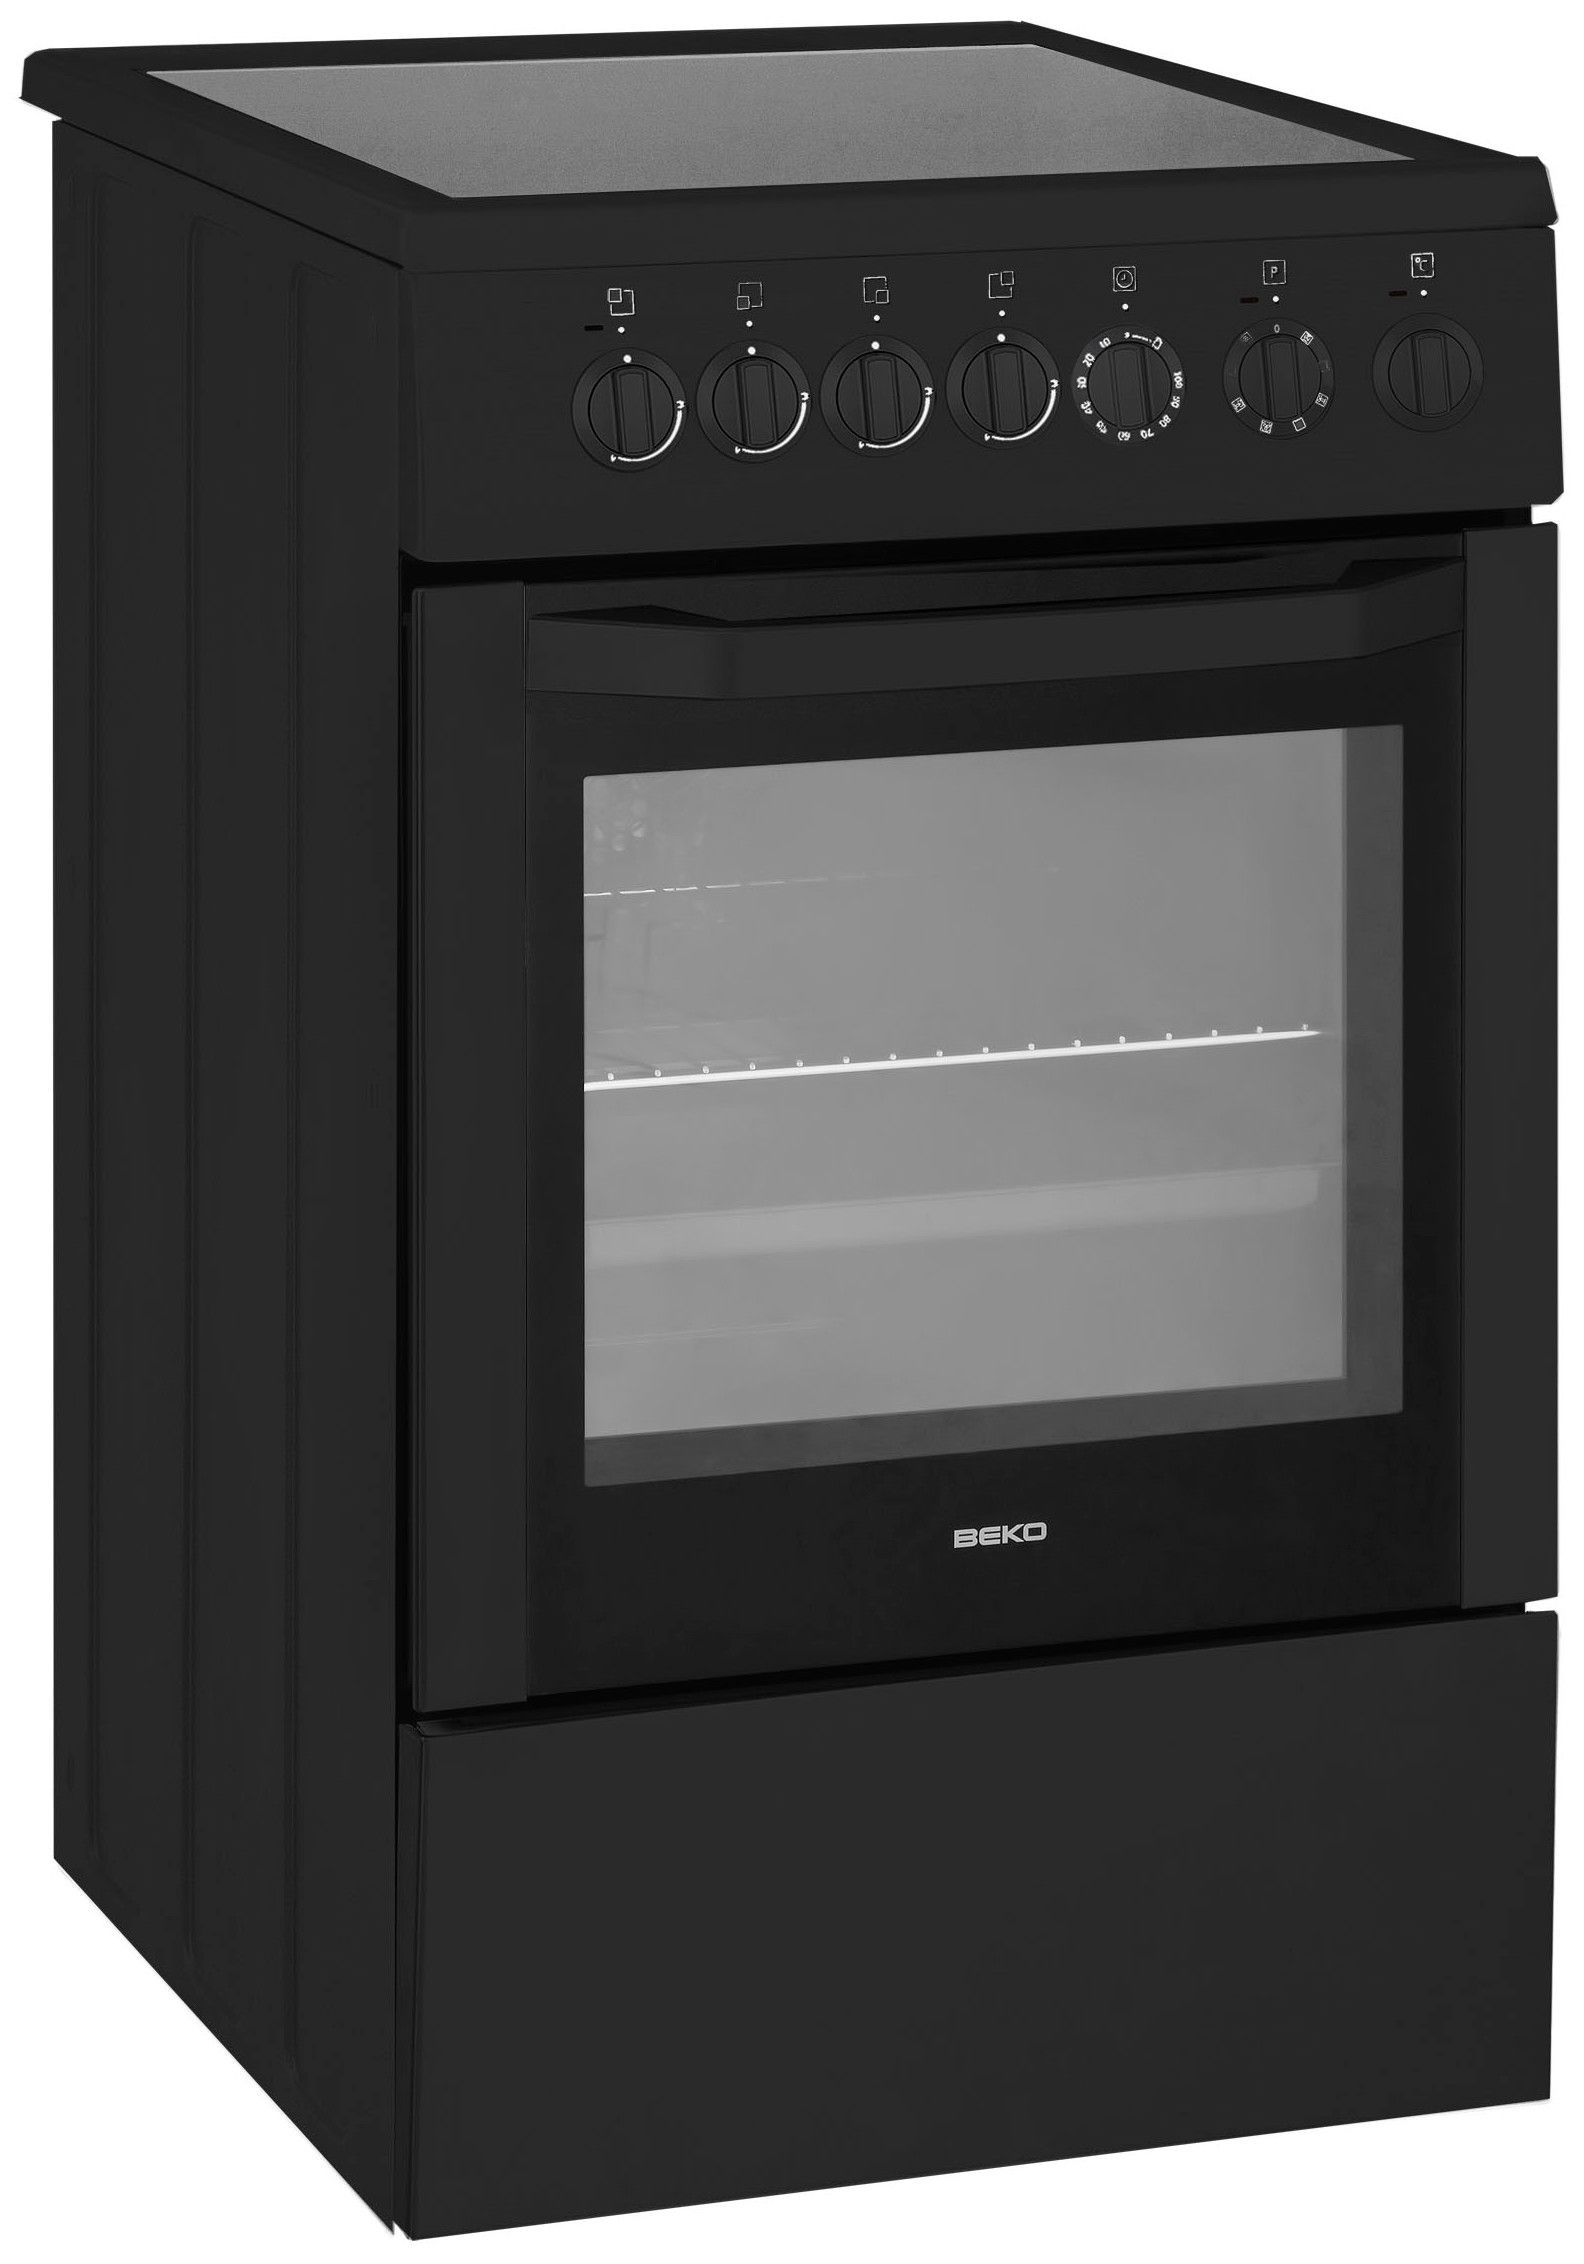 beko css57100ga cuisini re table vitroc ramique 4 foyers four lectrique catalyse 65l. Black Bedroom Furniture Sets. Home Design Ideas